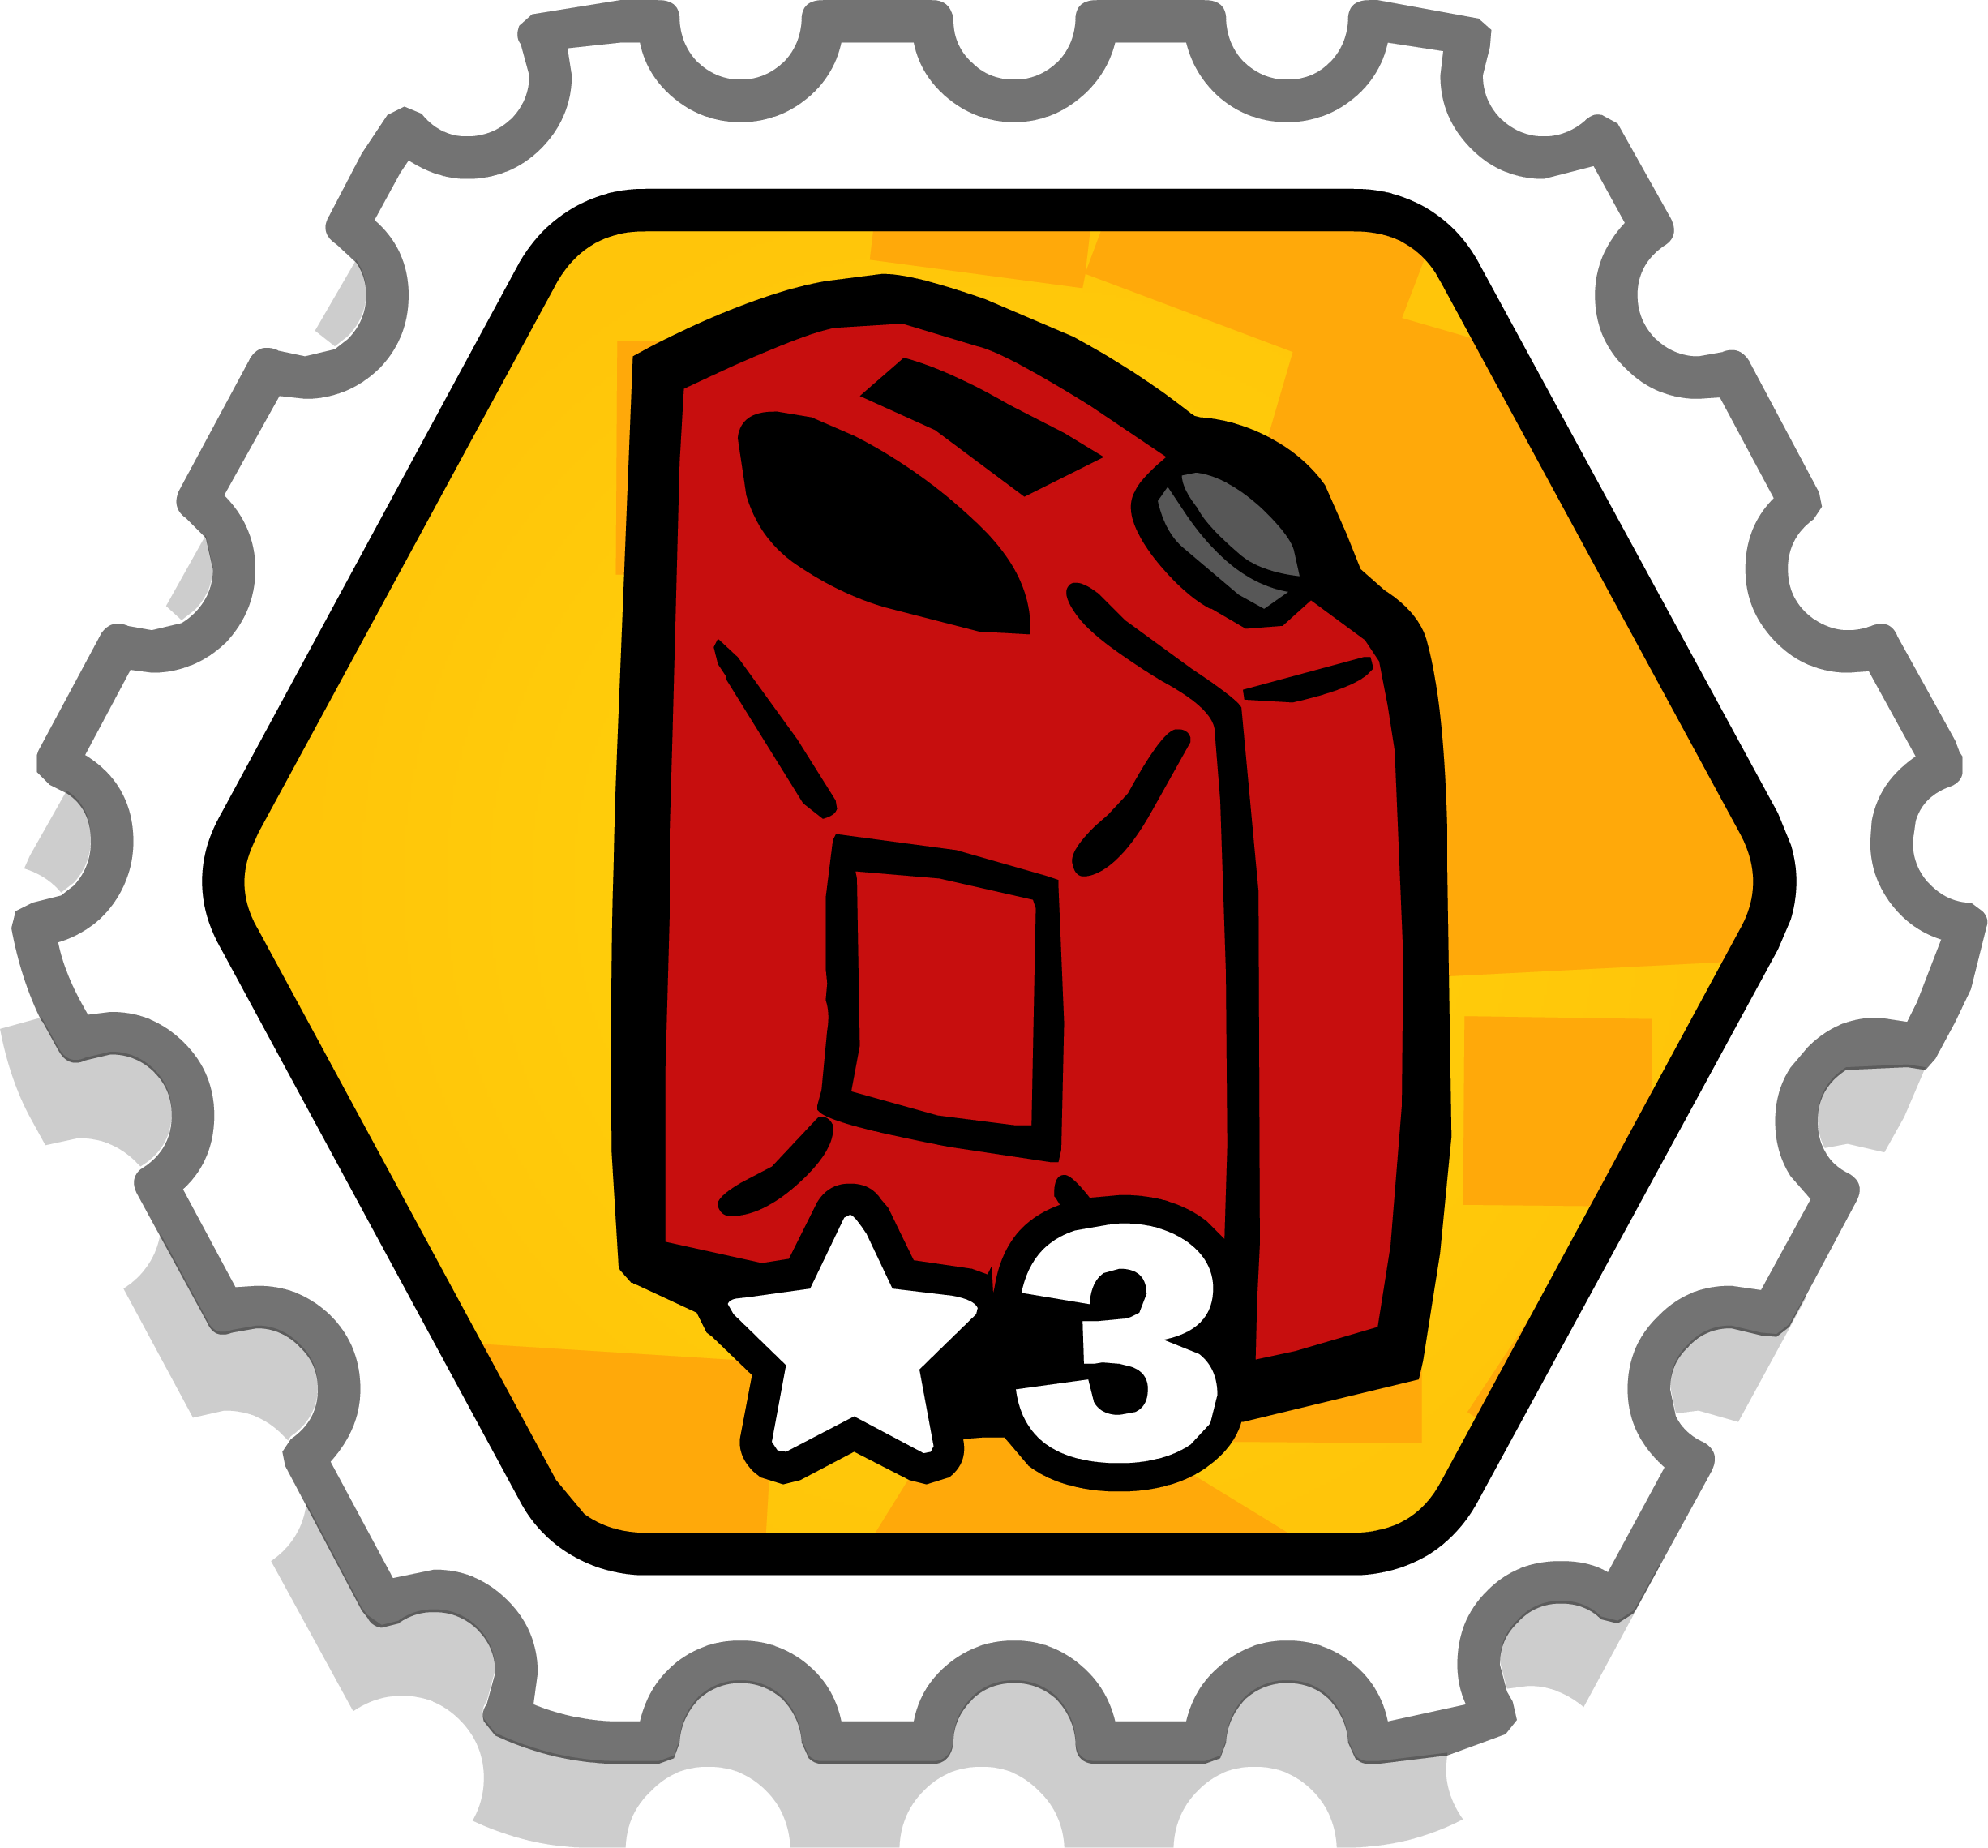 File:FuelRank3.png